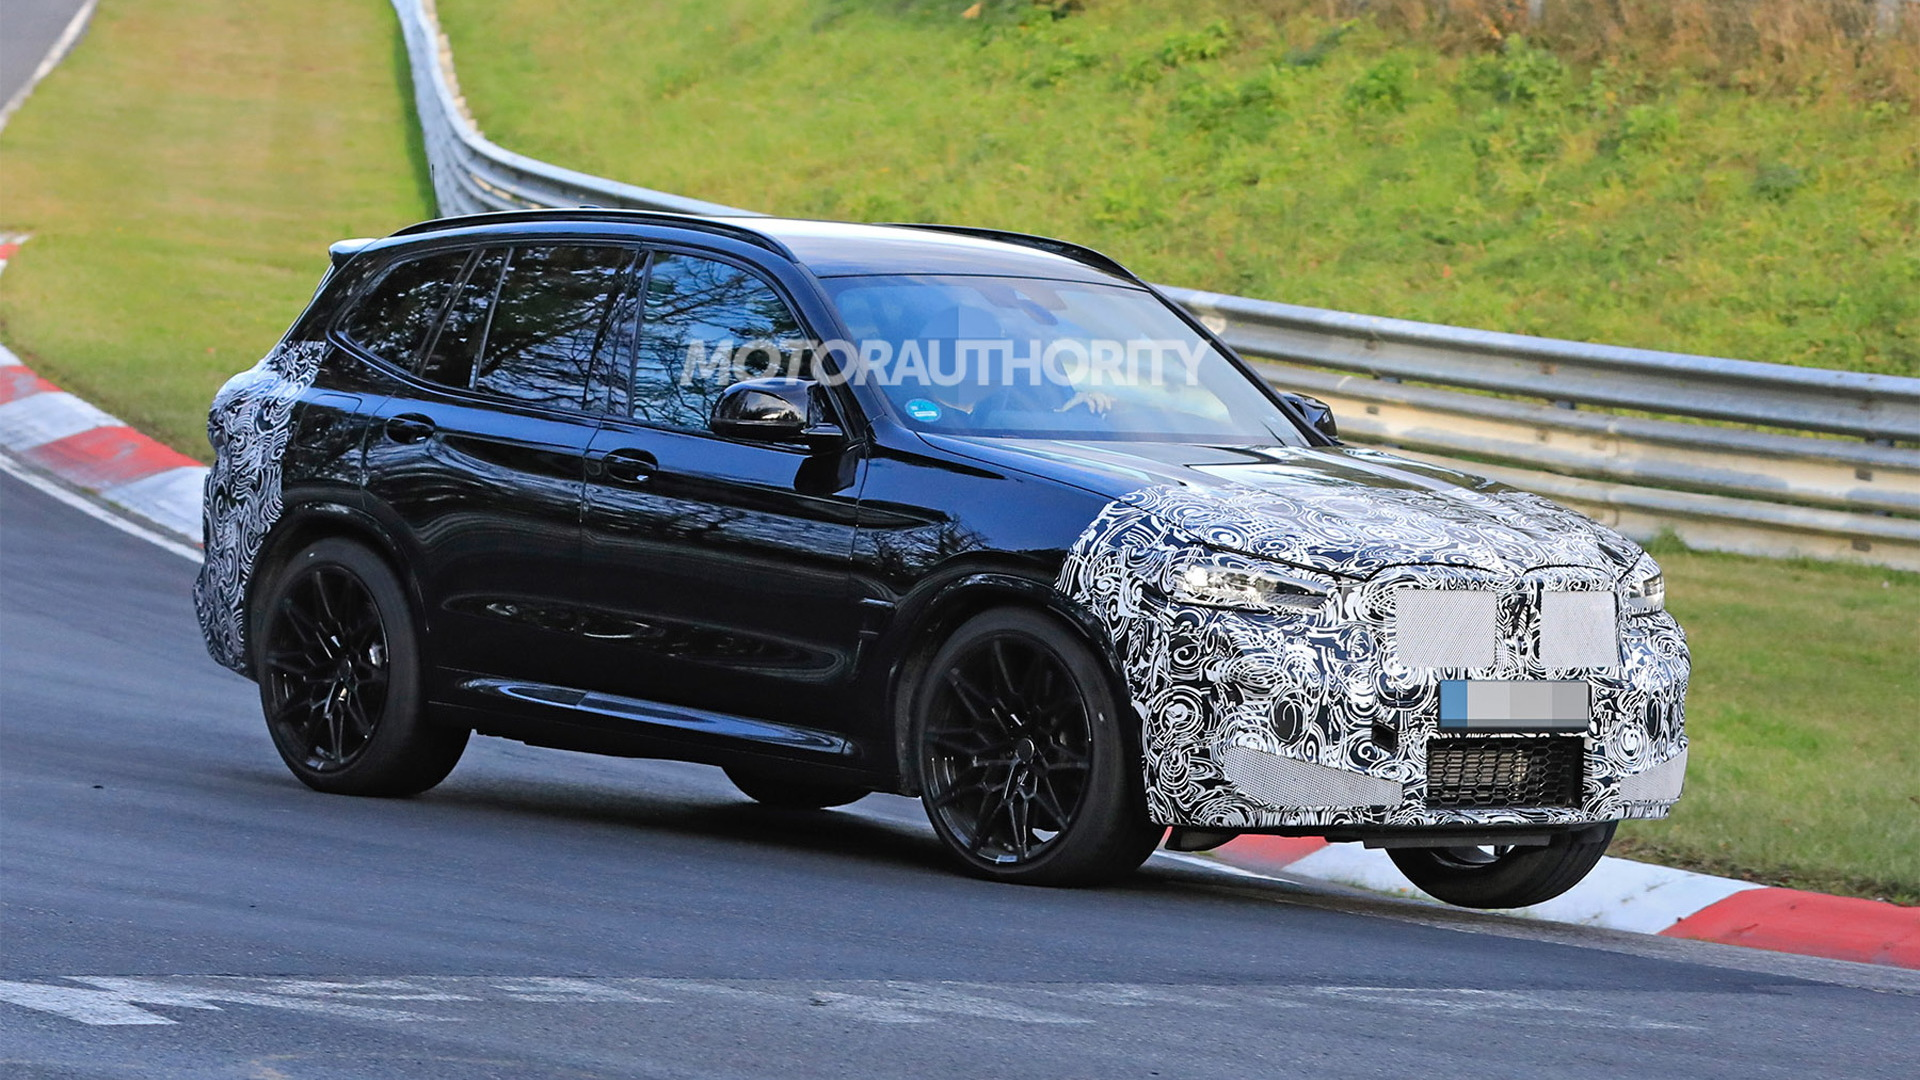 2022 BMW X3 M facelift spy shots - Photo credit: S. Baldauf/SB-Medien